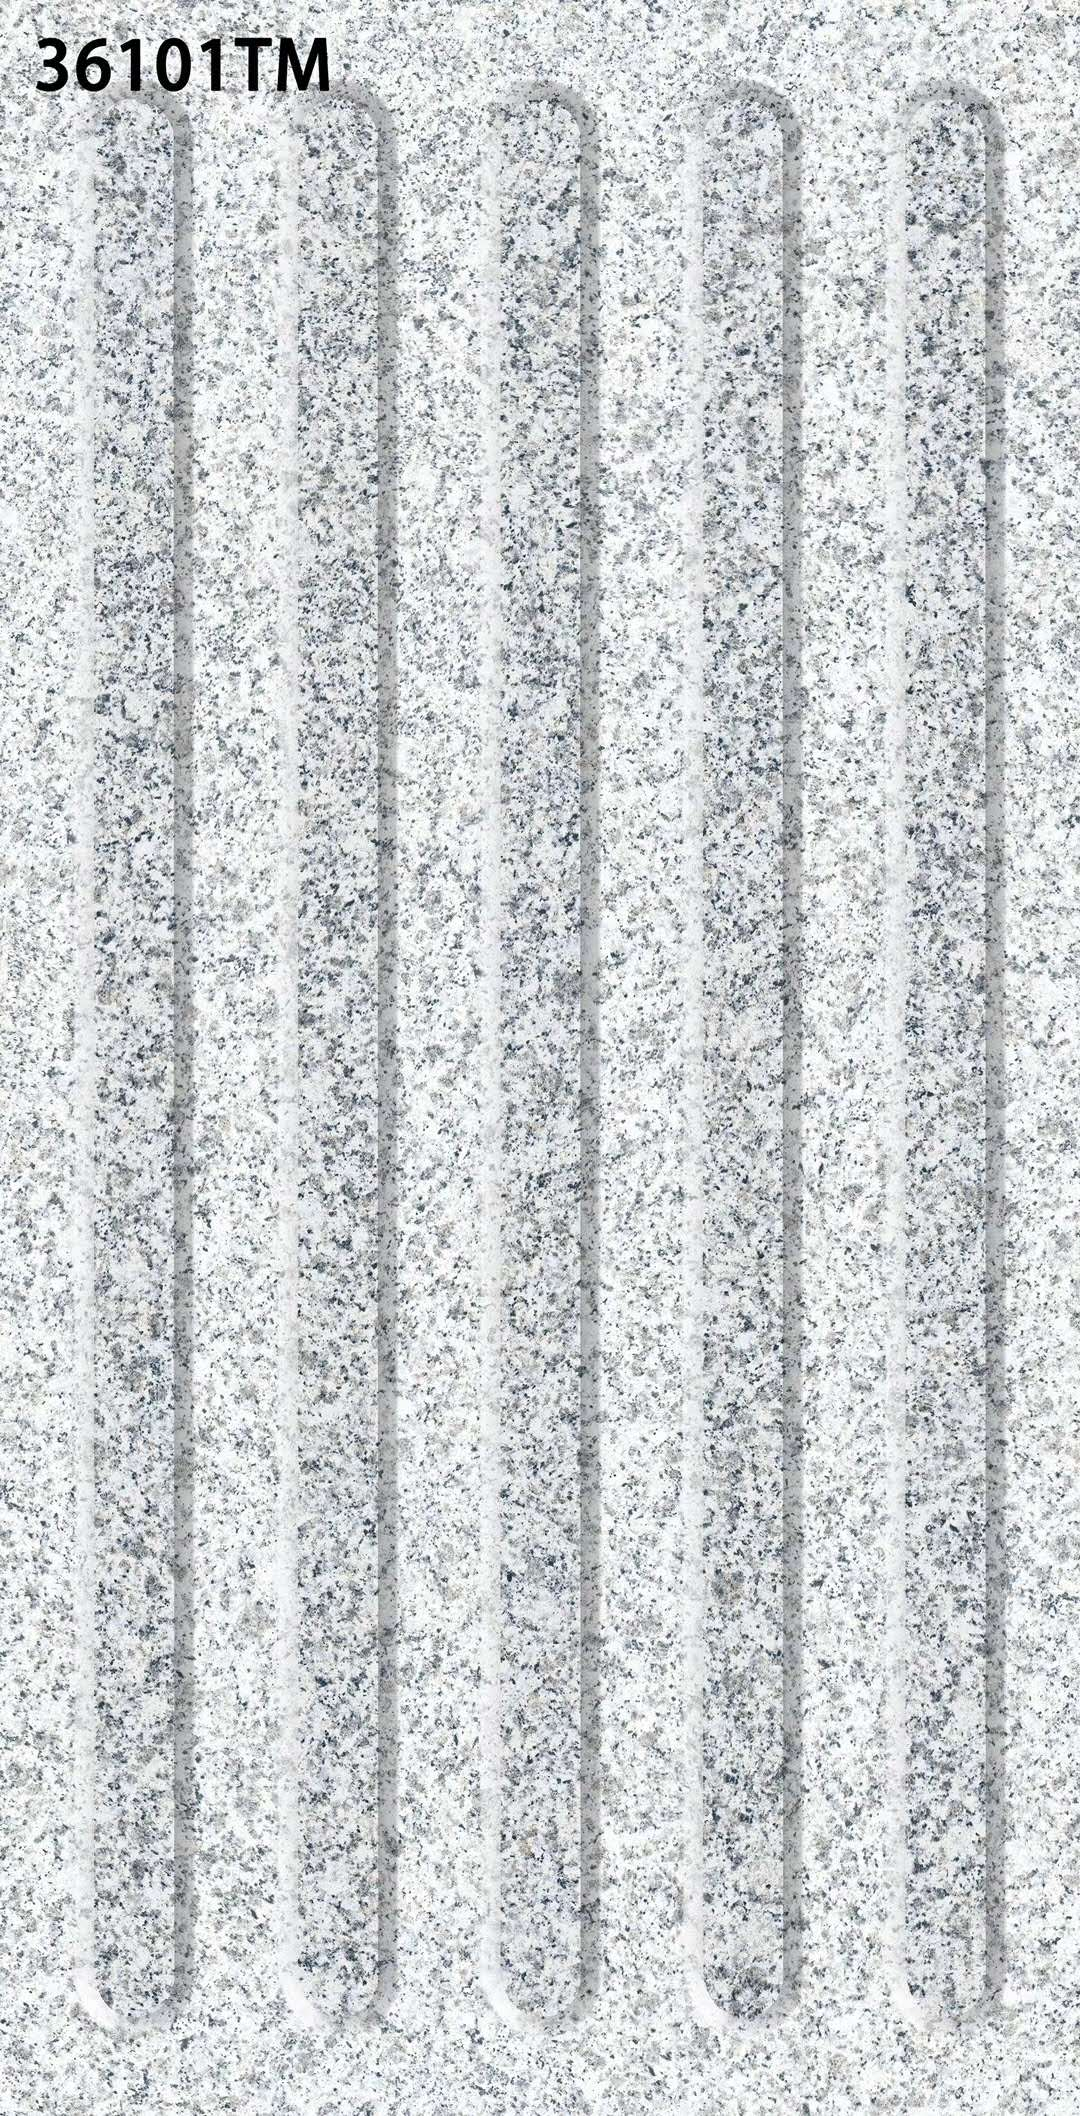 G603 Grey Artificial Granite Honed Ceramic Floor Tile